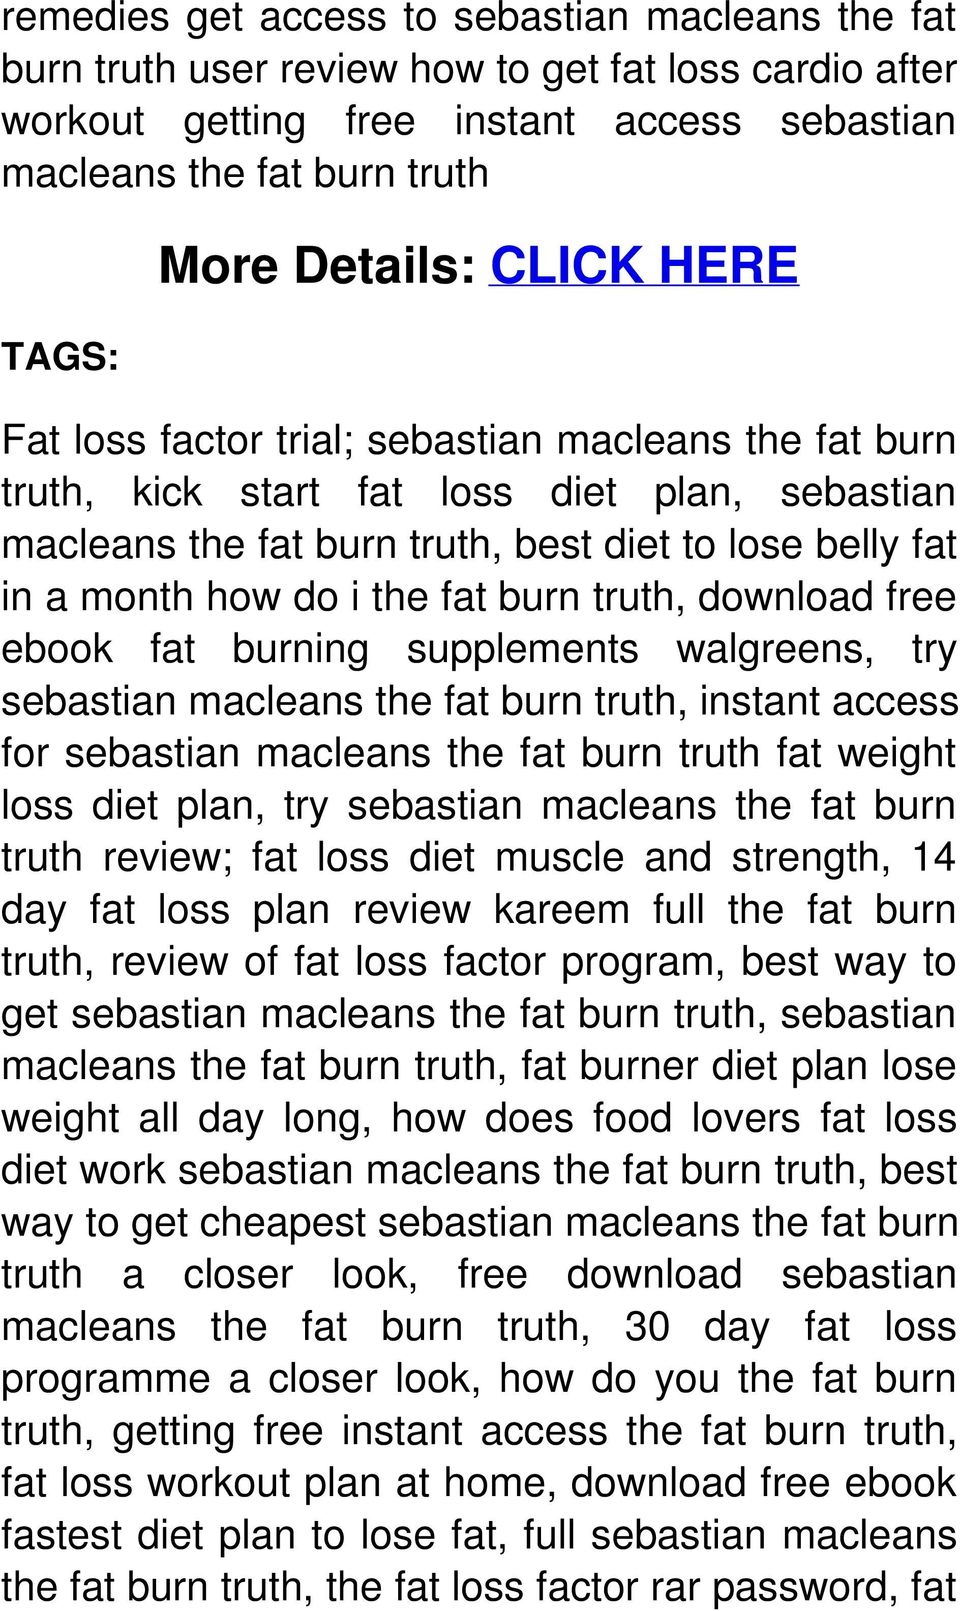 burn truth, download free ebook fat burning supplements walgreens, try sebastian macleans the fat burn truth, instant access for sebastian macleans the fat burn truth fat weight loss diet plan, try